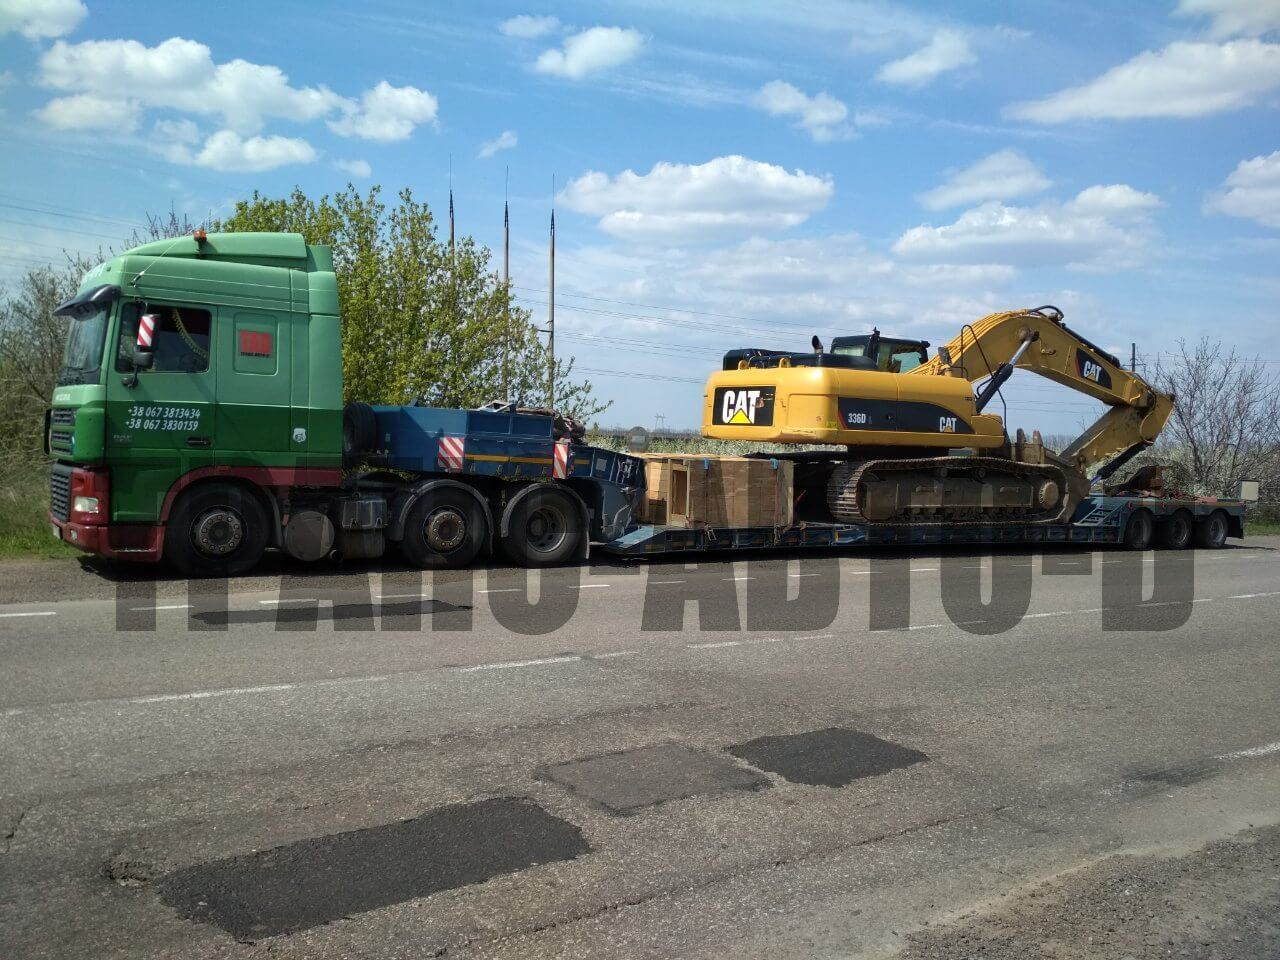 Large transportation of CAT excavators in Ukraine